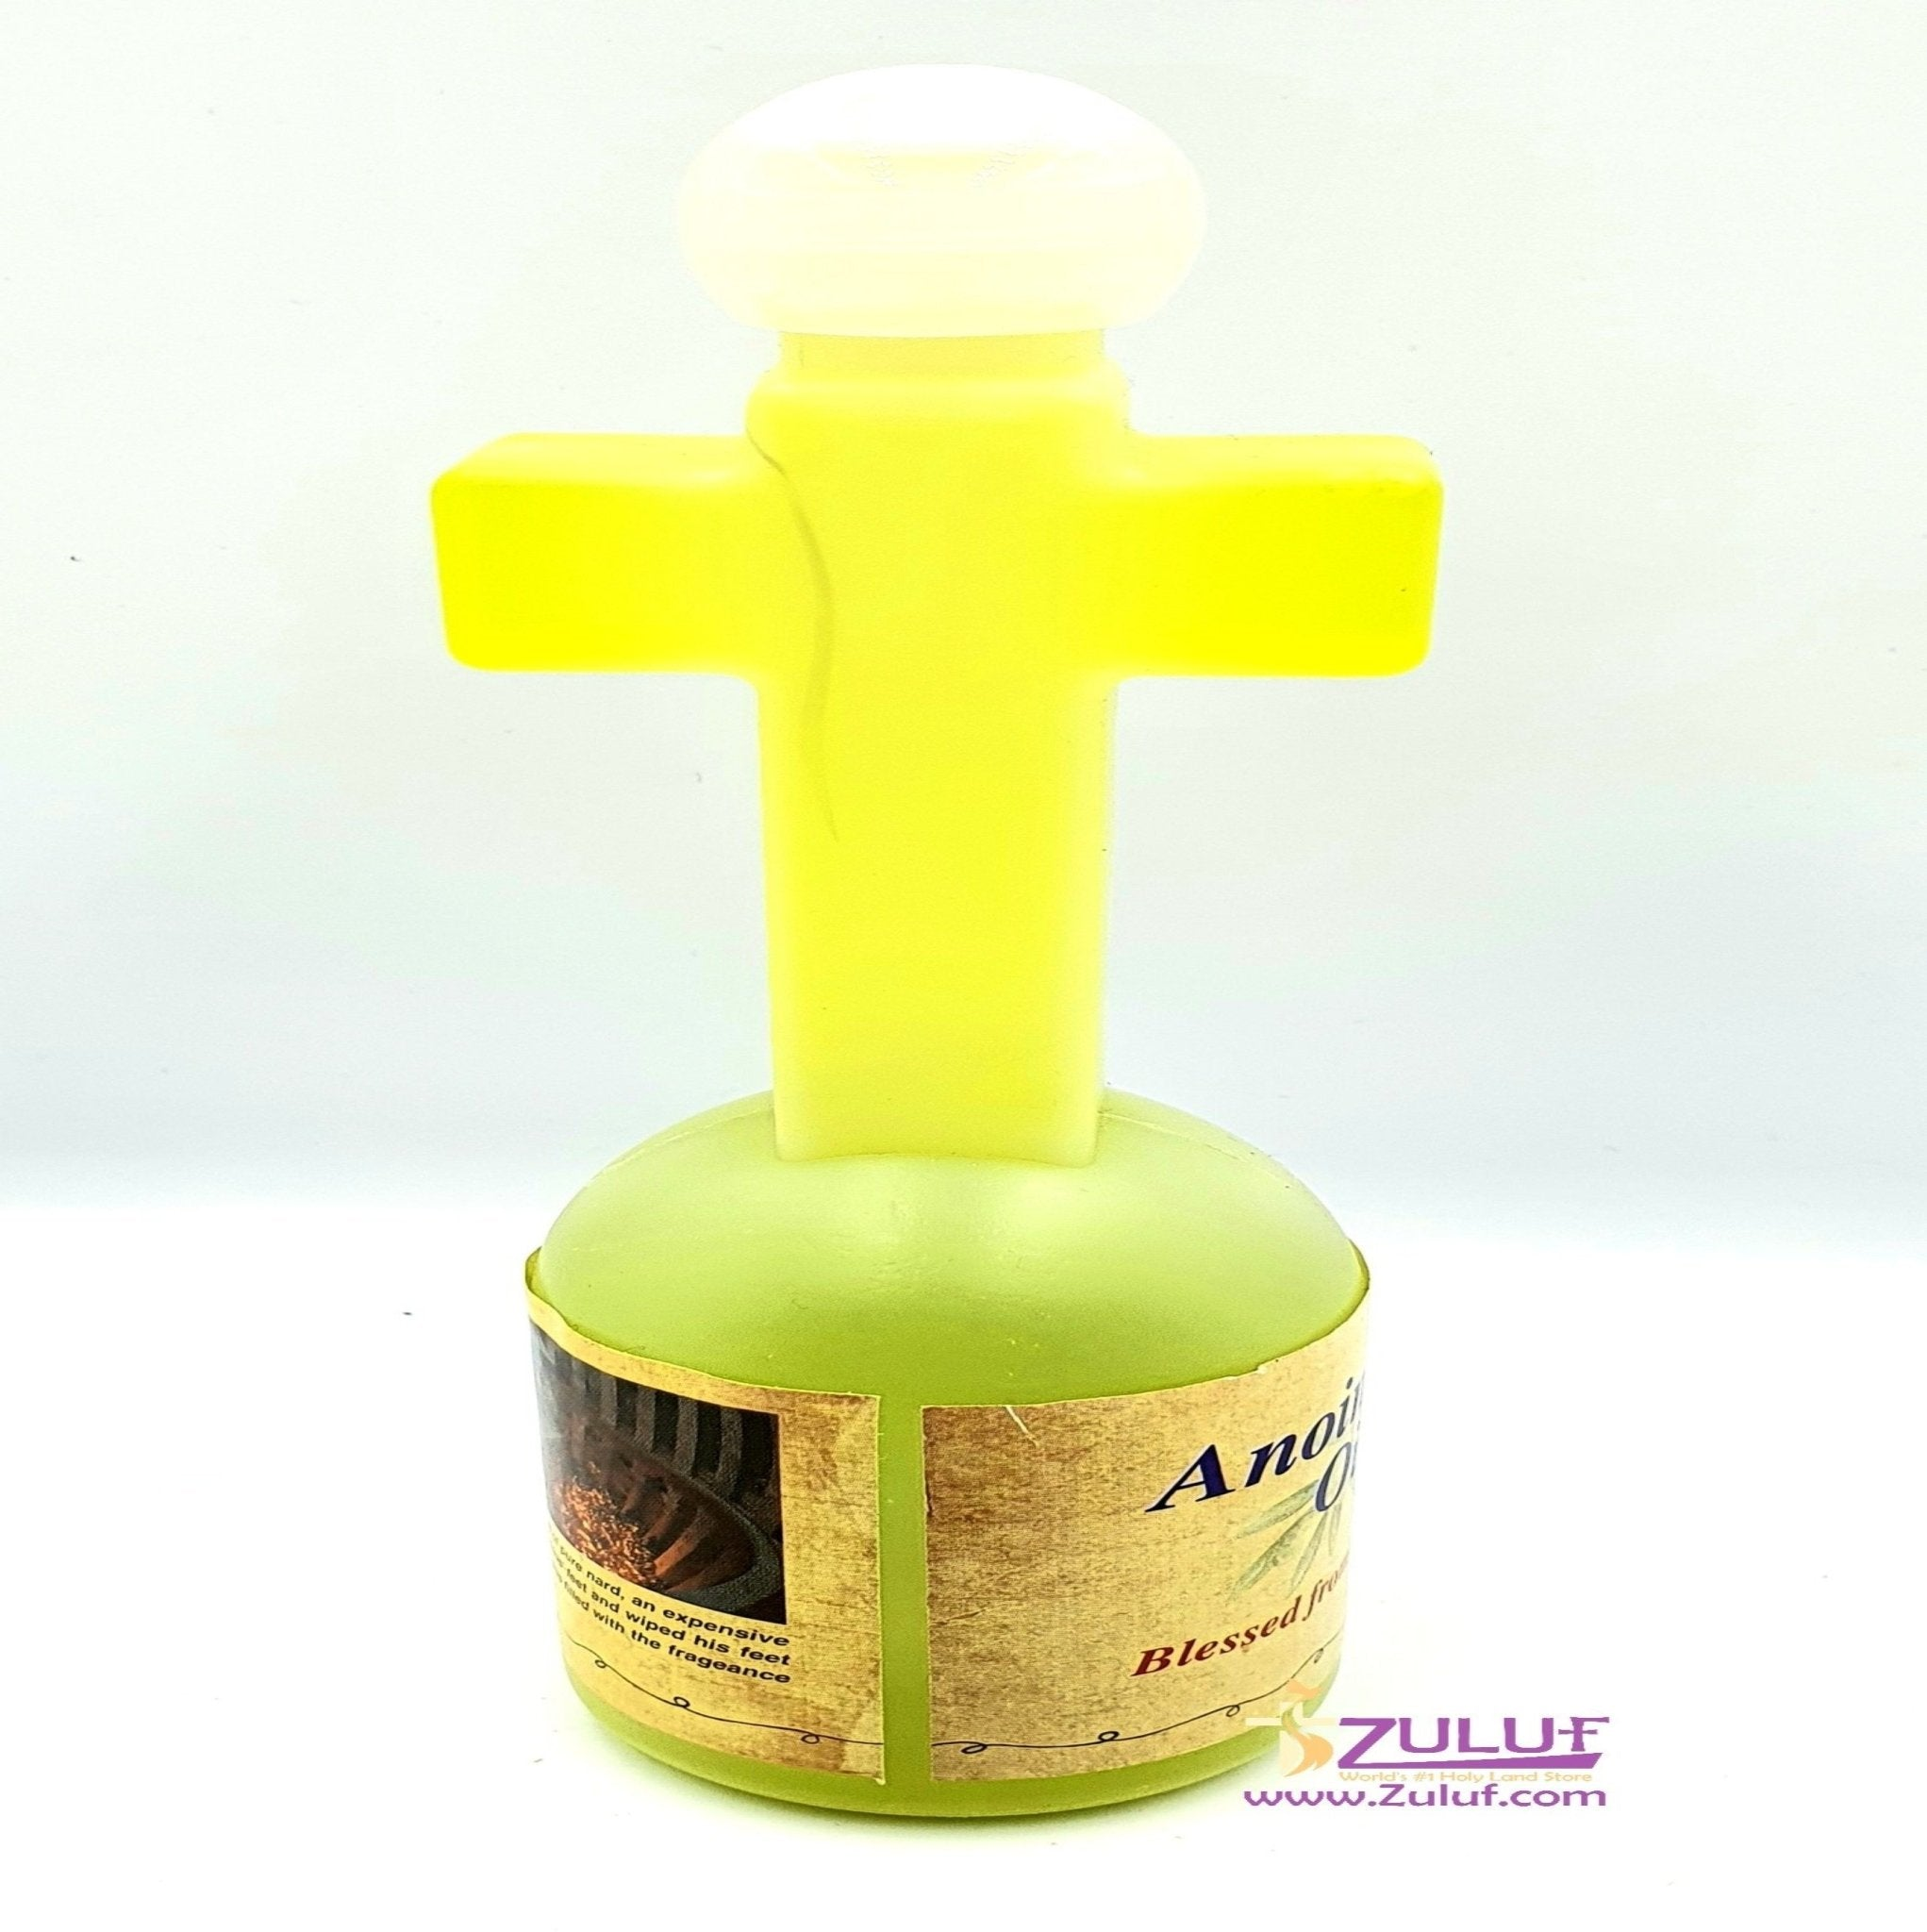 Blessed Olive Anointing Oil In A Cross Shaped Bottle By Zuluf® - (HLG093) - Zuluf